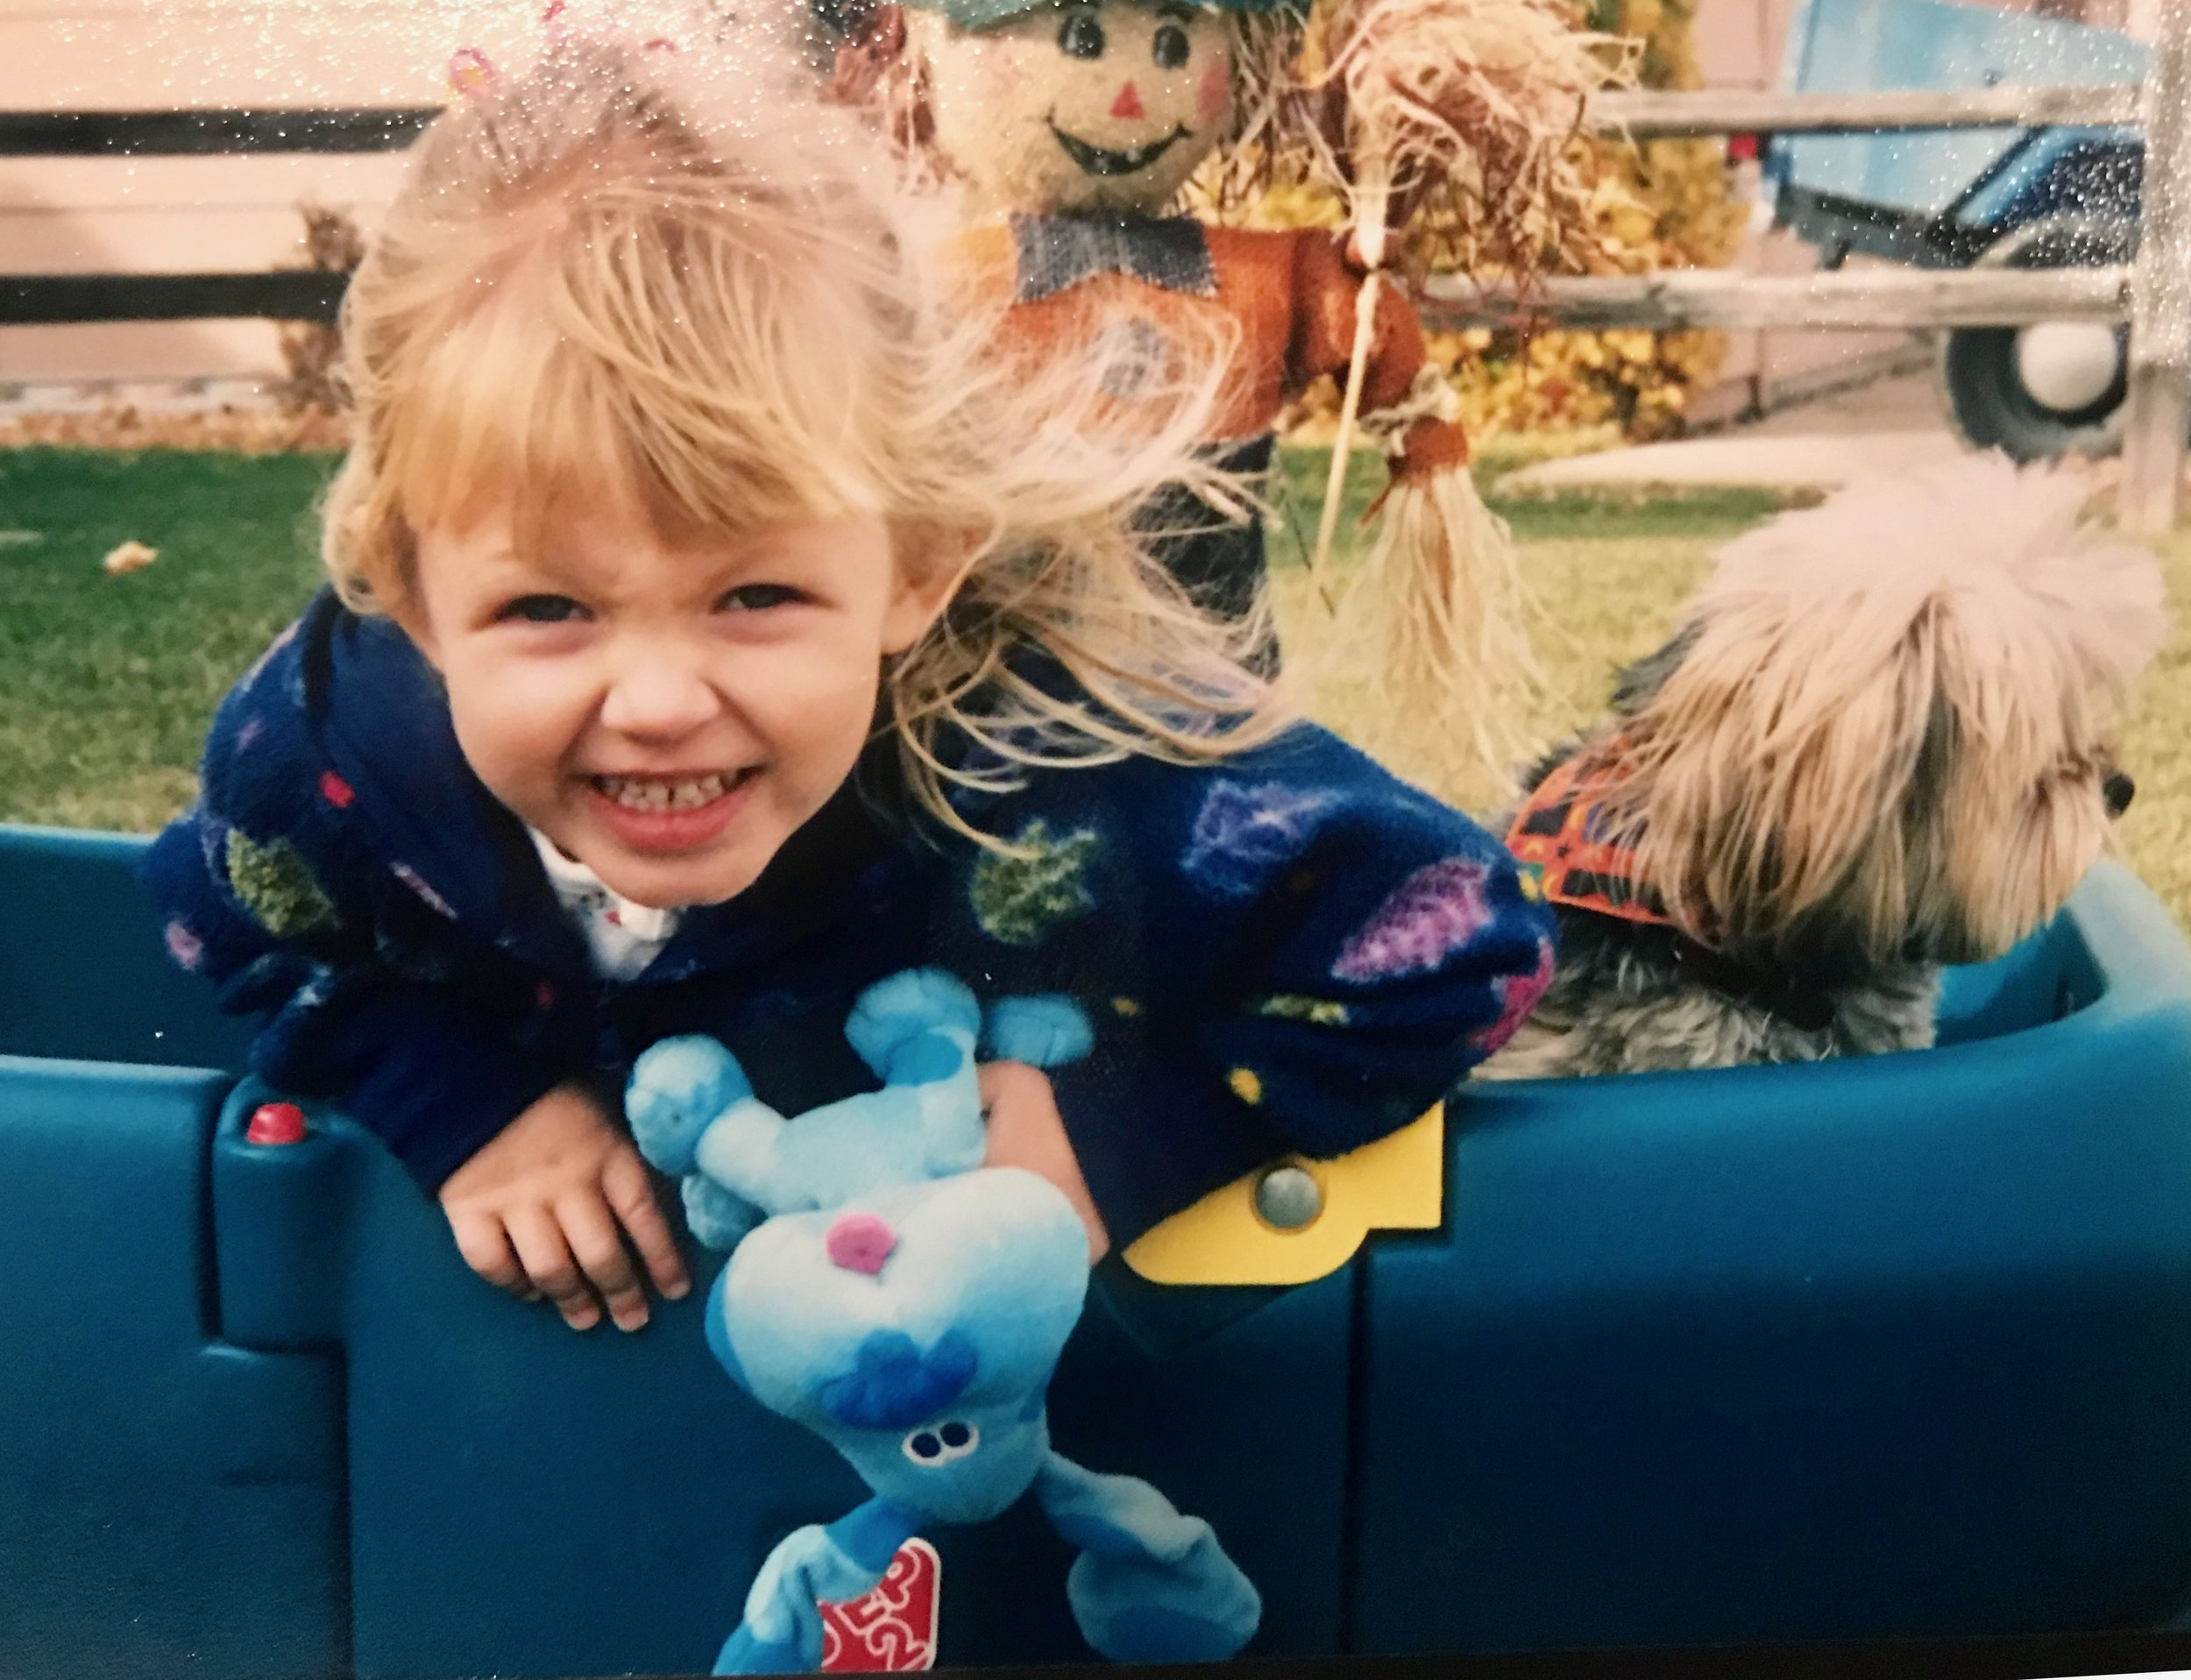 Emily at age 2.